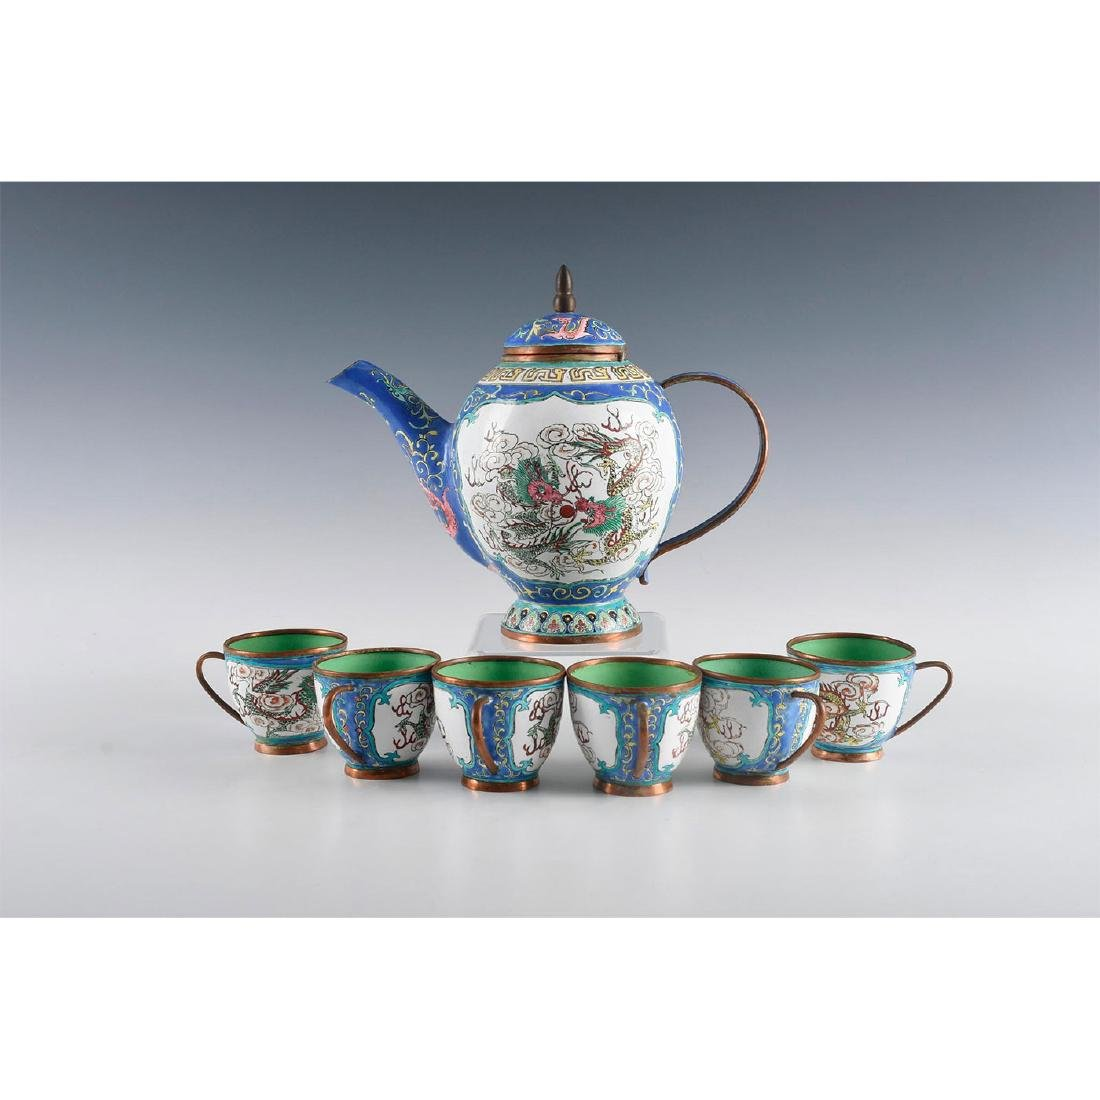 GROUP OF 7 JAPANESE TEACUPS AND TEAPOT